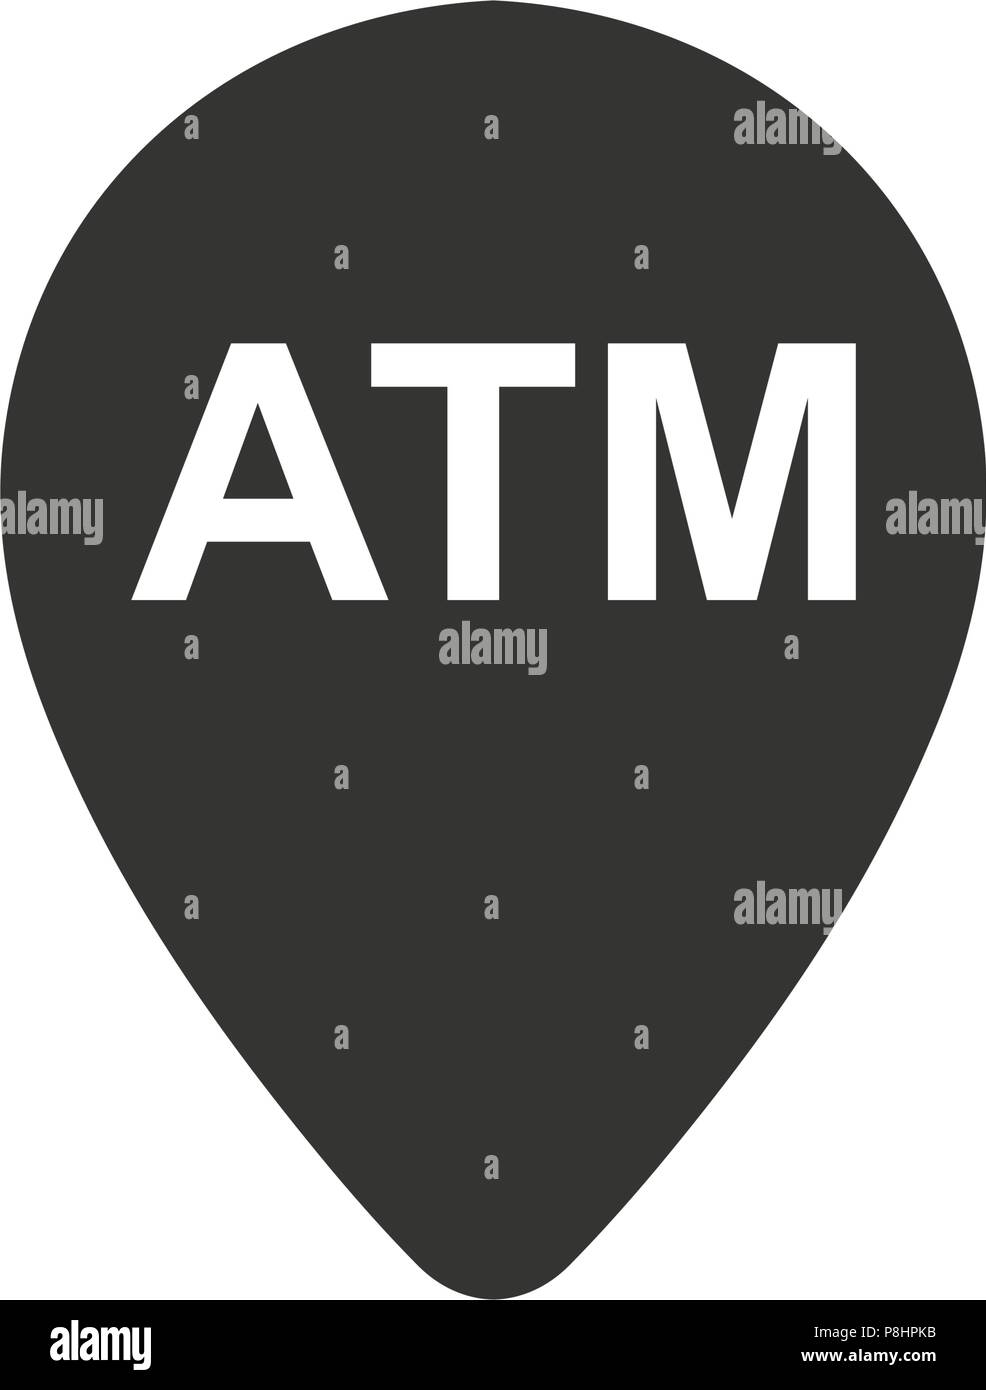 location of atm